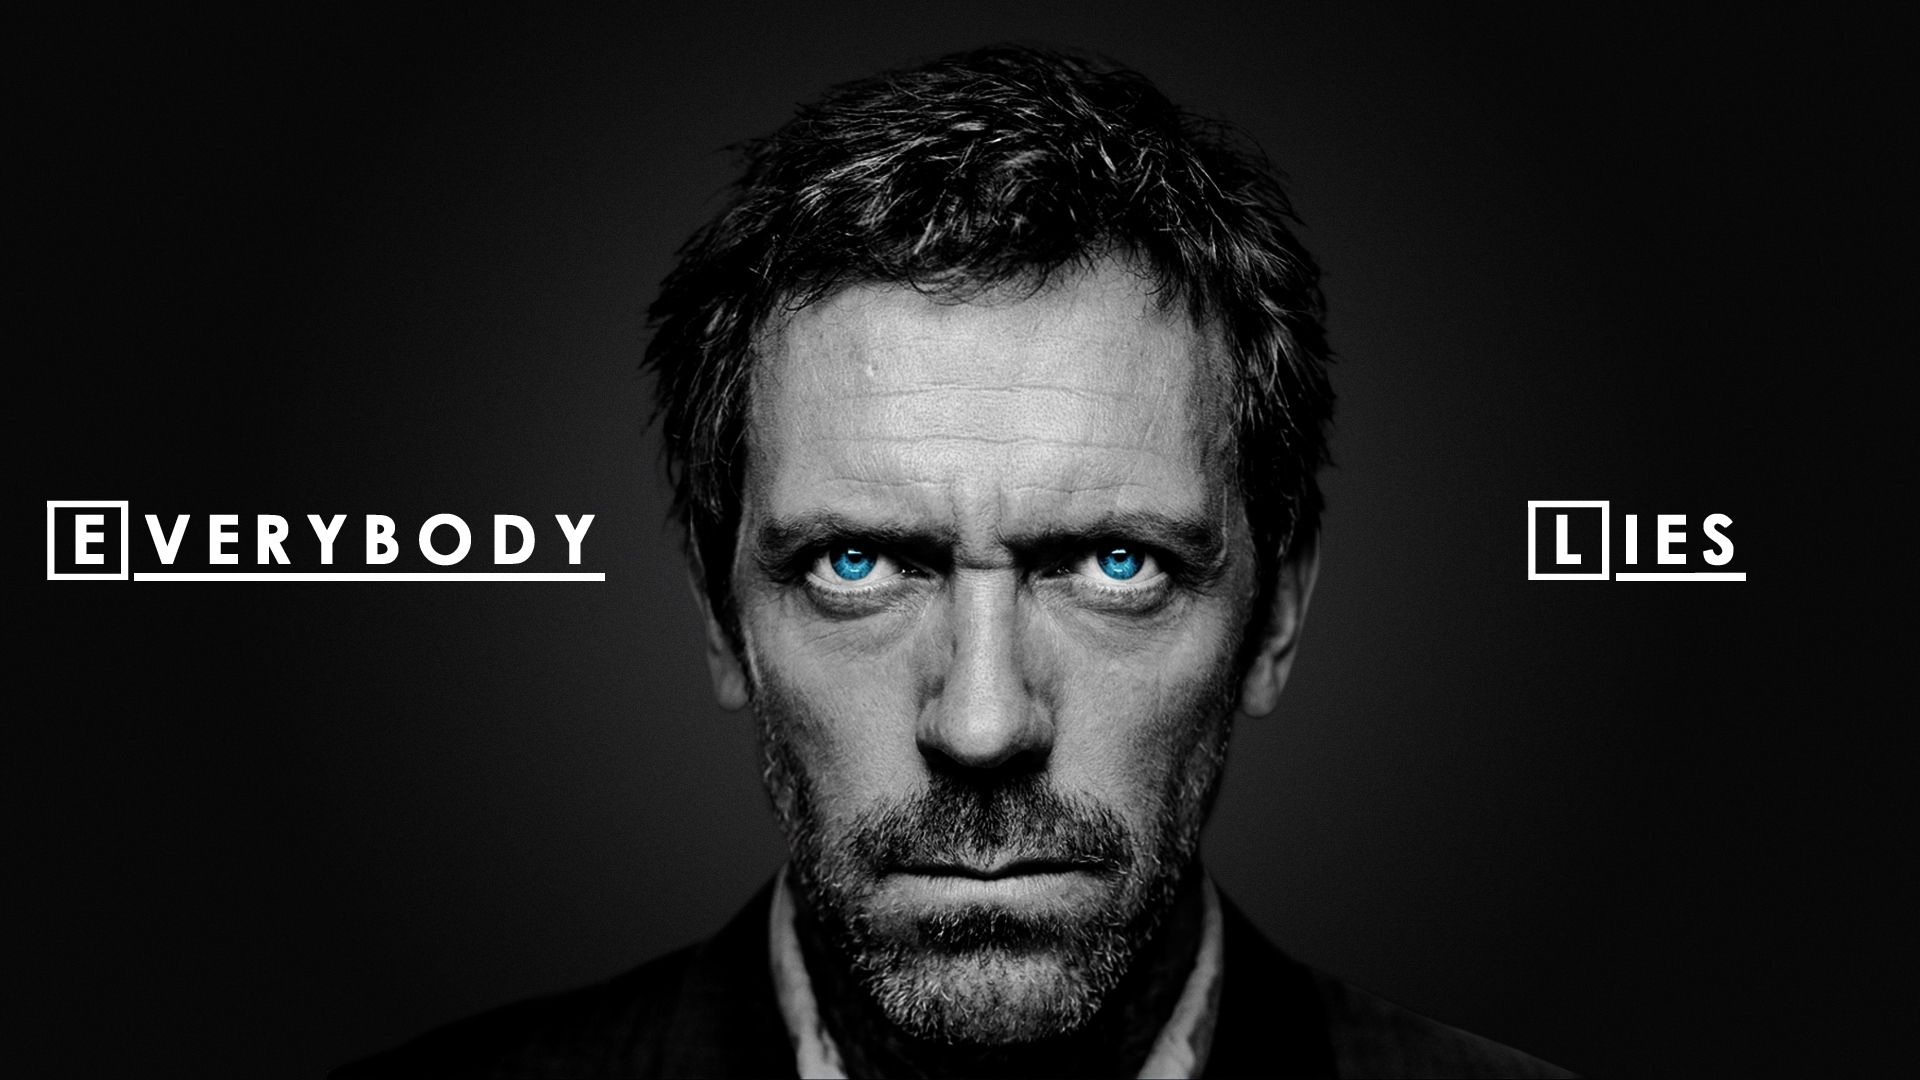 Discussion on this topic: How to Act Like Dr. Gregory House, how-to-act-like-dr-gregory-house/